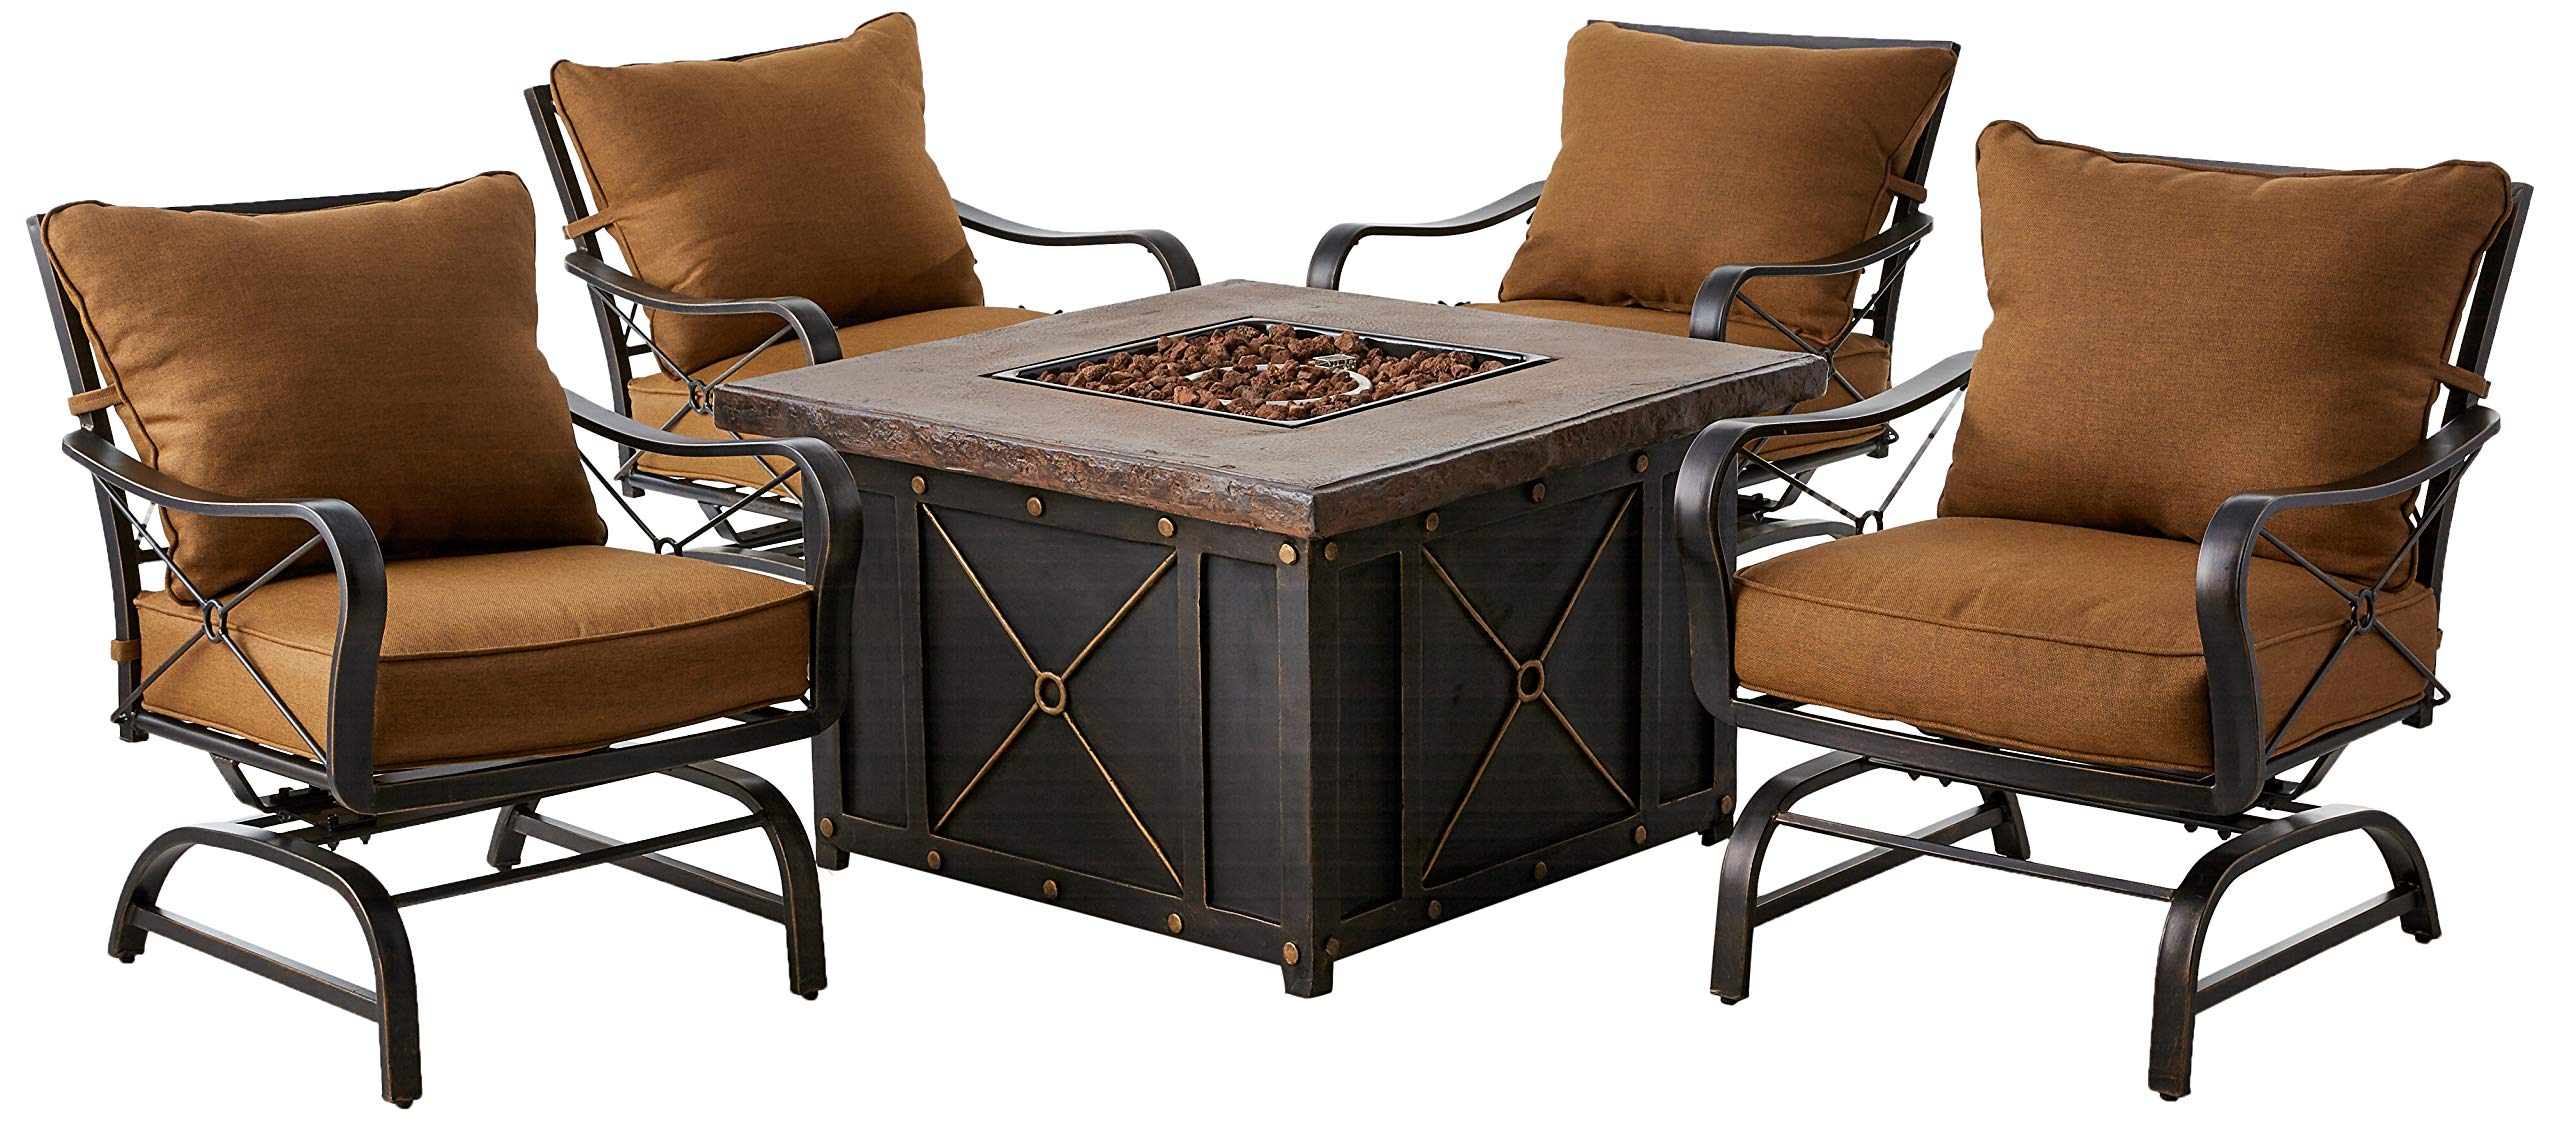 Hanover SUMMRNGHT5PC Summer Nights 5-Piece Patio Fire Pit Set Outdoor Furniture, 40'', Desert Sun by Hanover